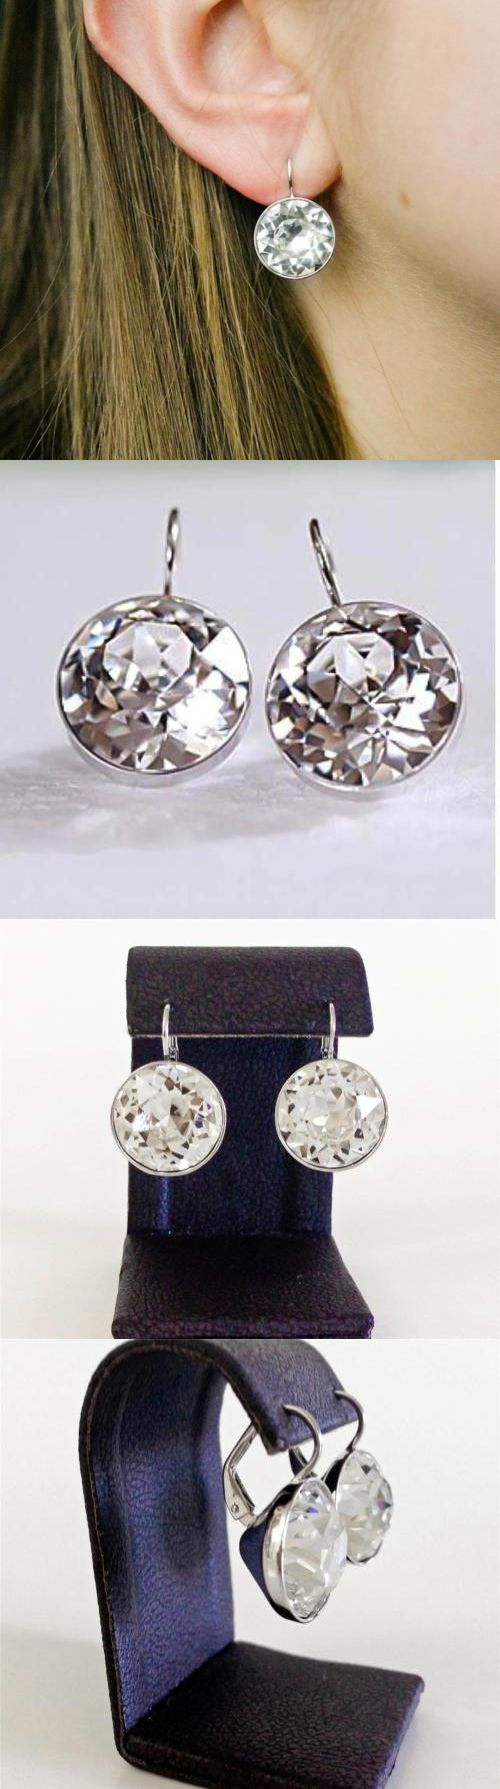 Earrings 50647: L Round Bella Earrings Clear Swarovski Crystal Gold Silver Plated Bezel Lever -> BUY IT NOW ONLY: $34.9 on eBay!